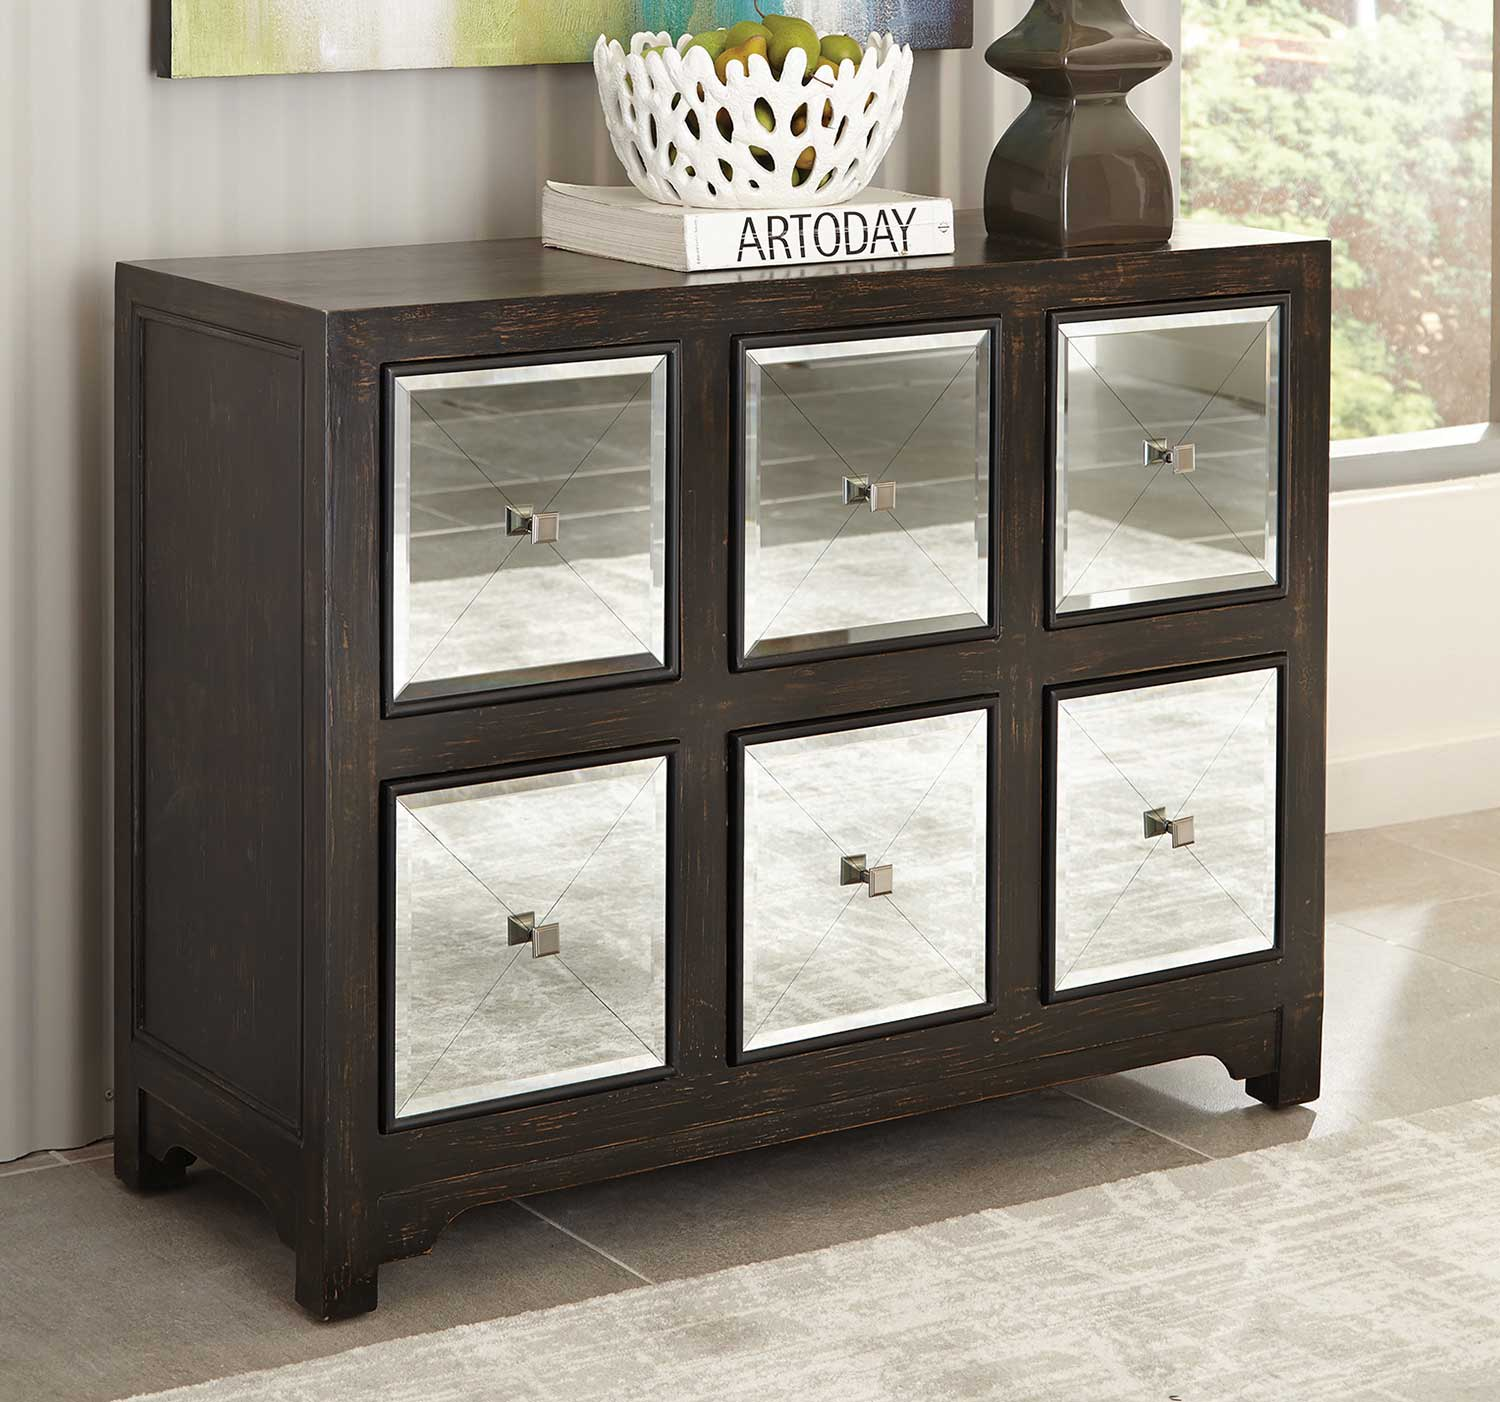 Coaster 950776 Accent Cabinet - Rustic Brown/Silver